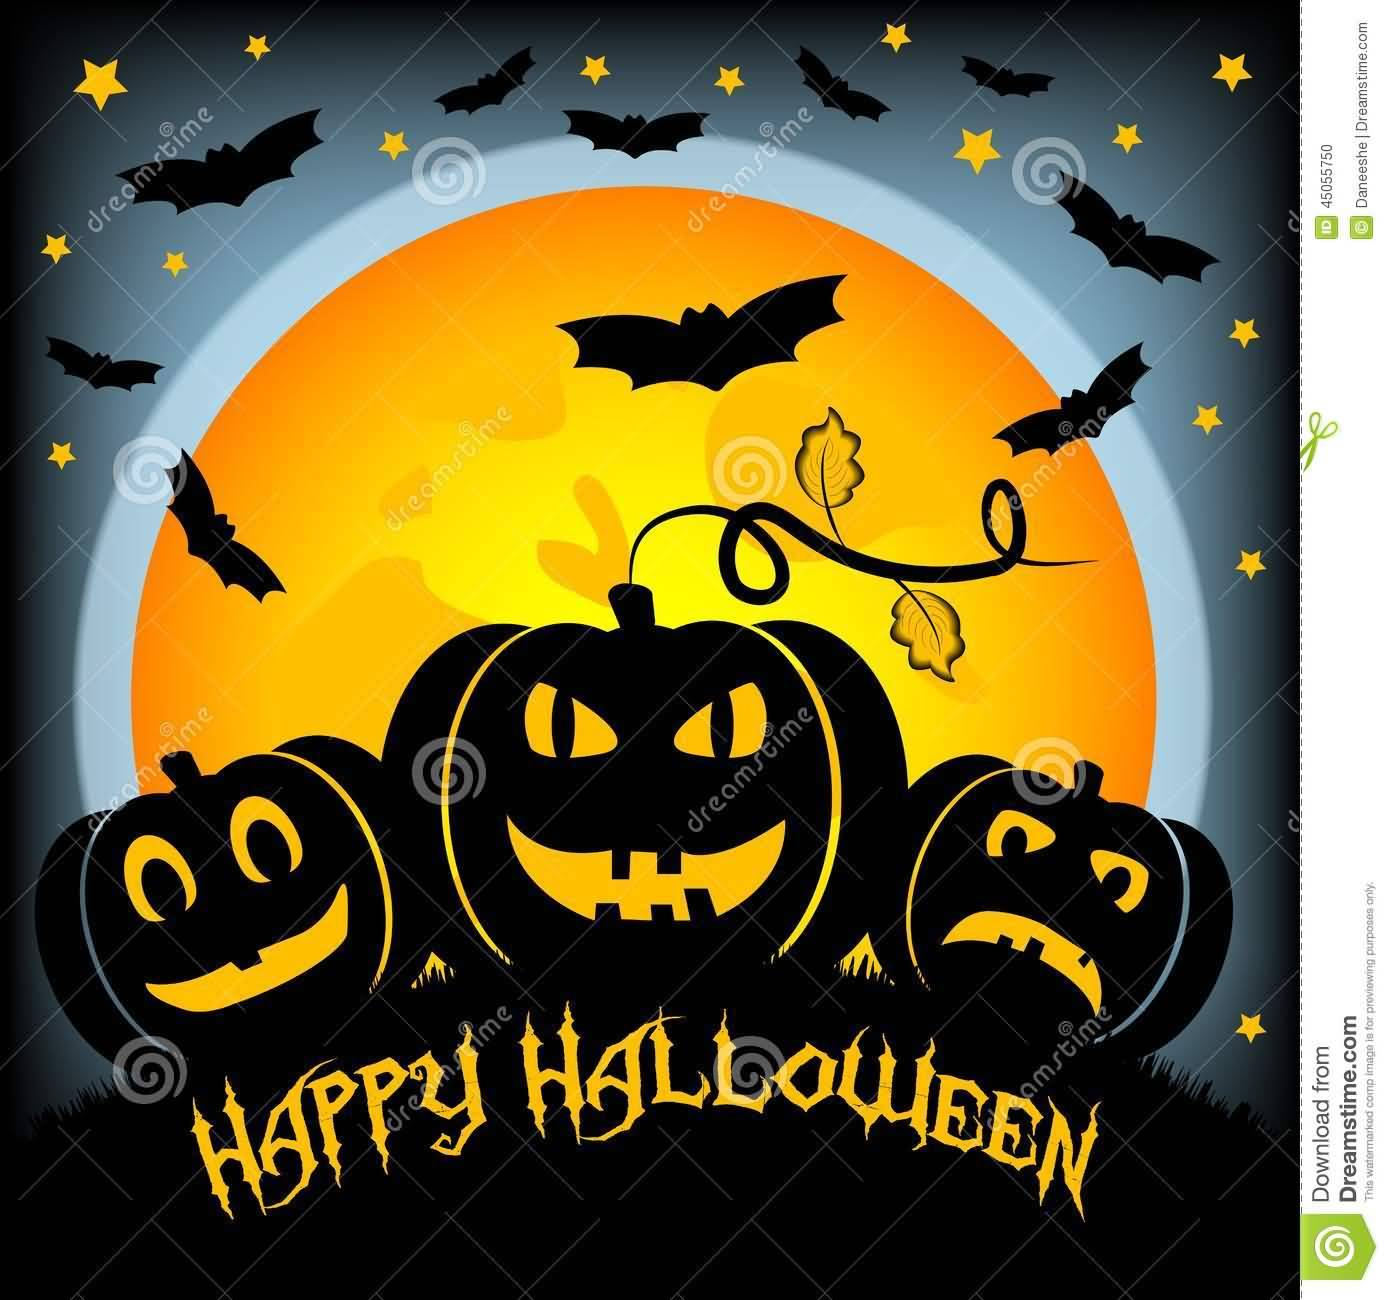 halloween 2017 wishes images for viber line imo video chat